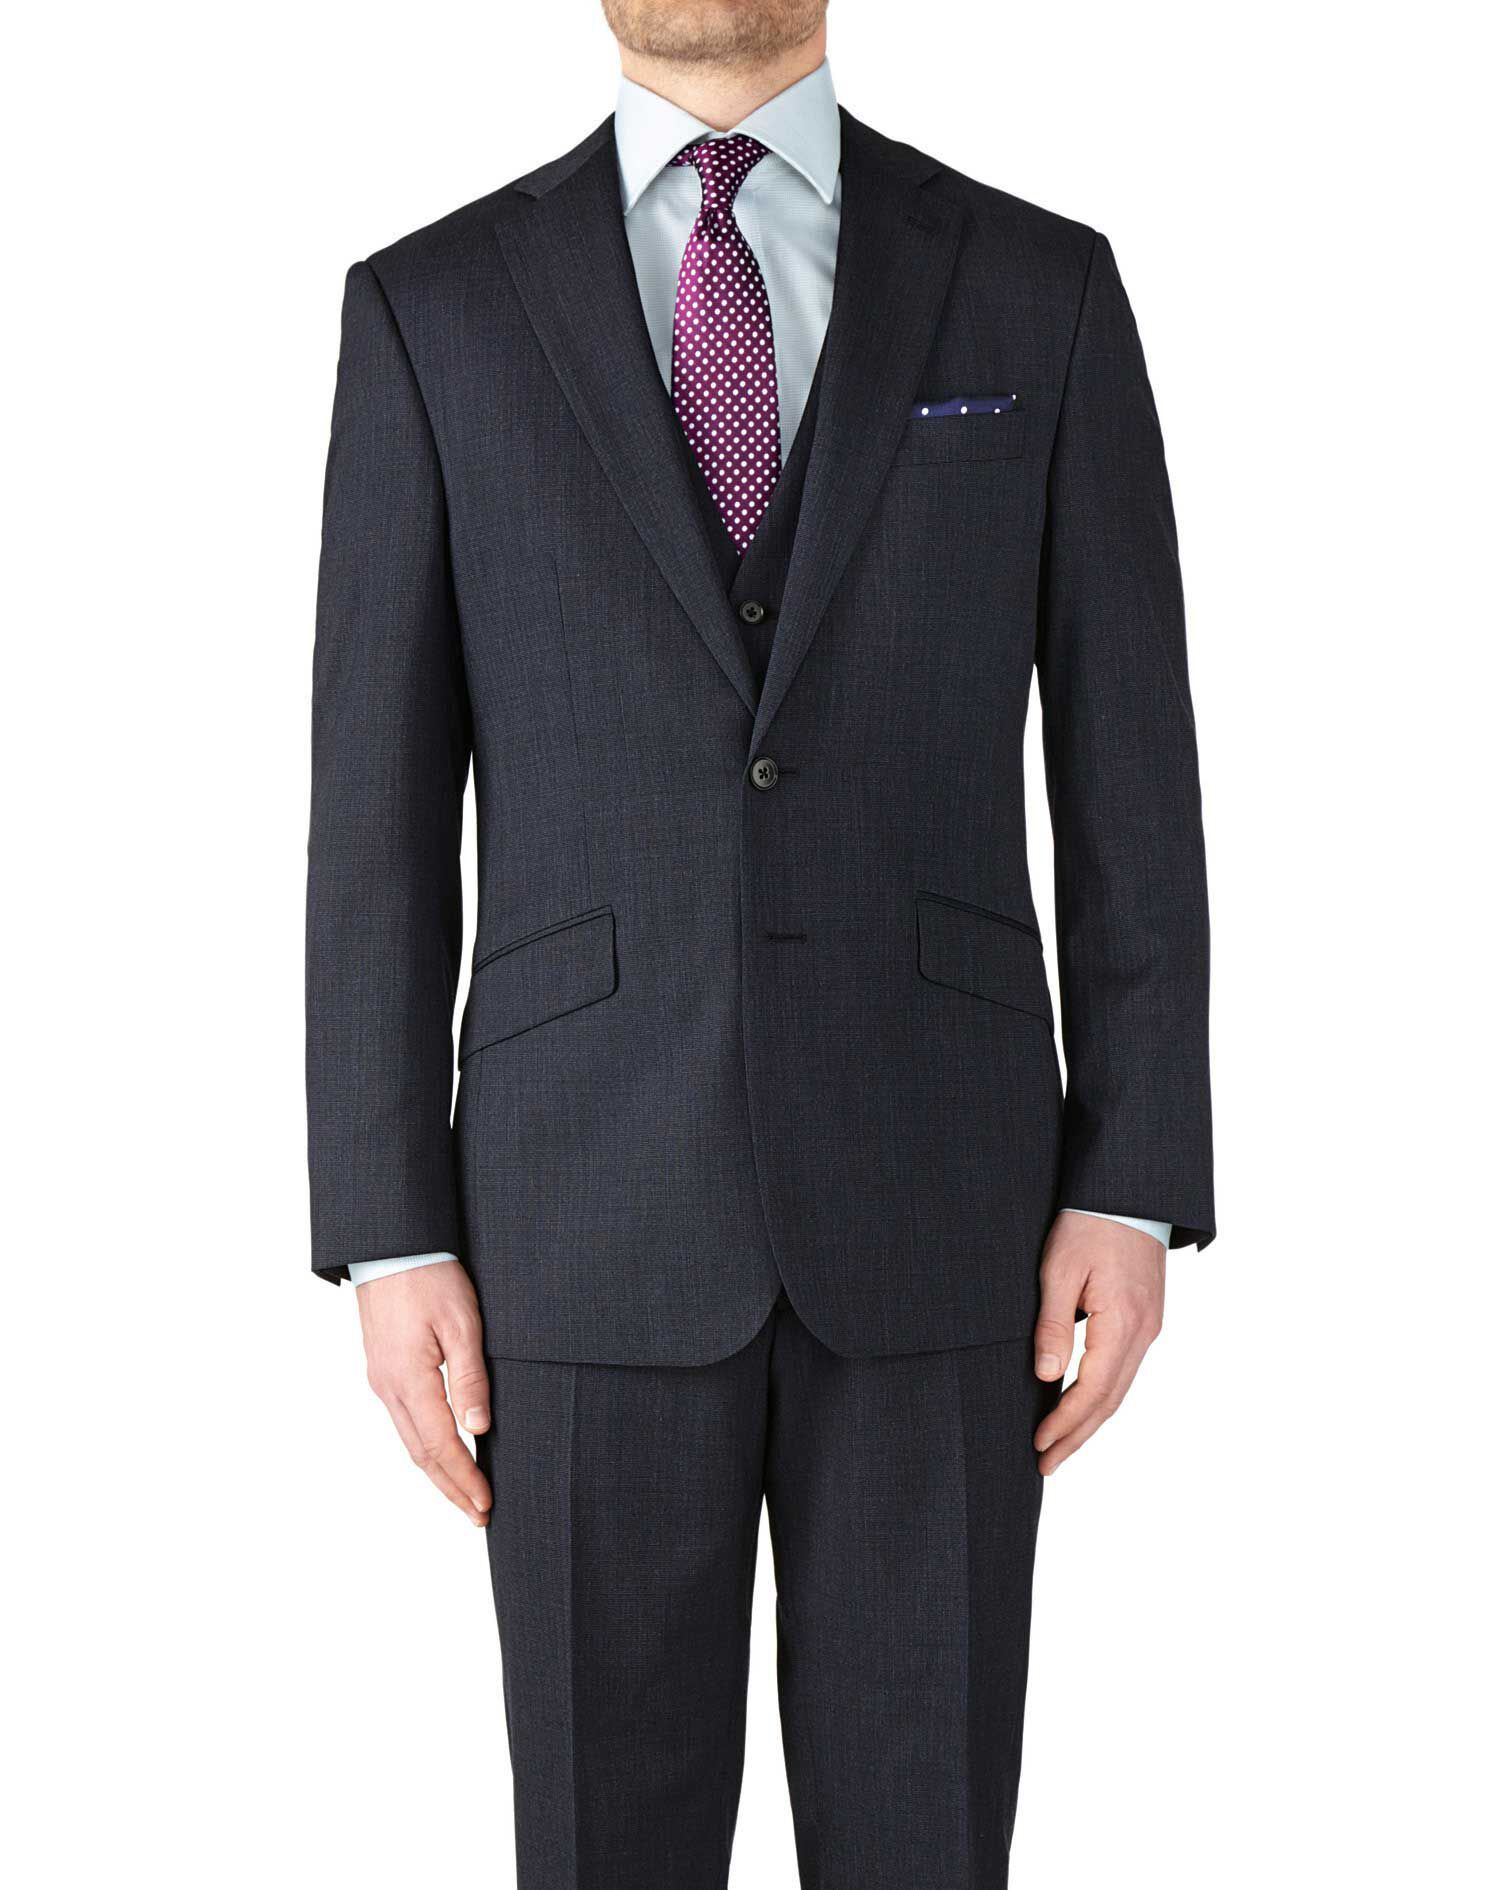 Navy Slim Fit End-On-End Business Suit Wool Jacket Size 36 Short by Charles Tyrwhitt